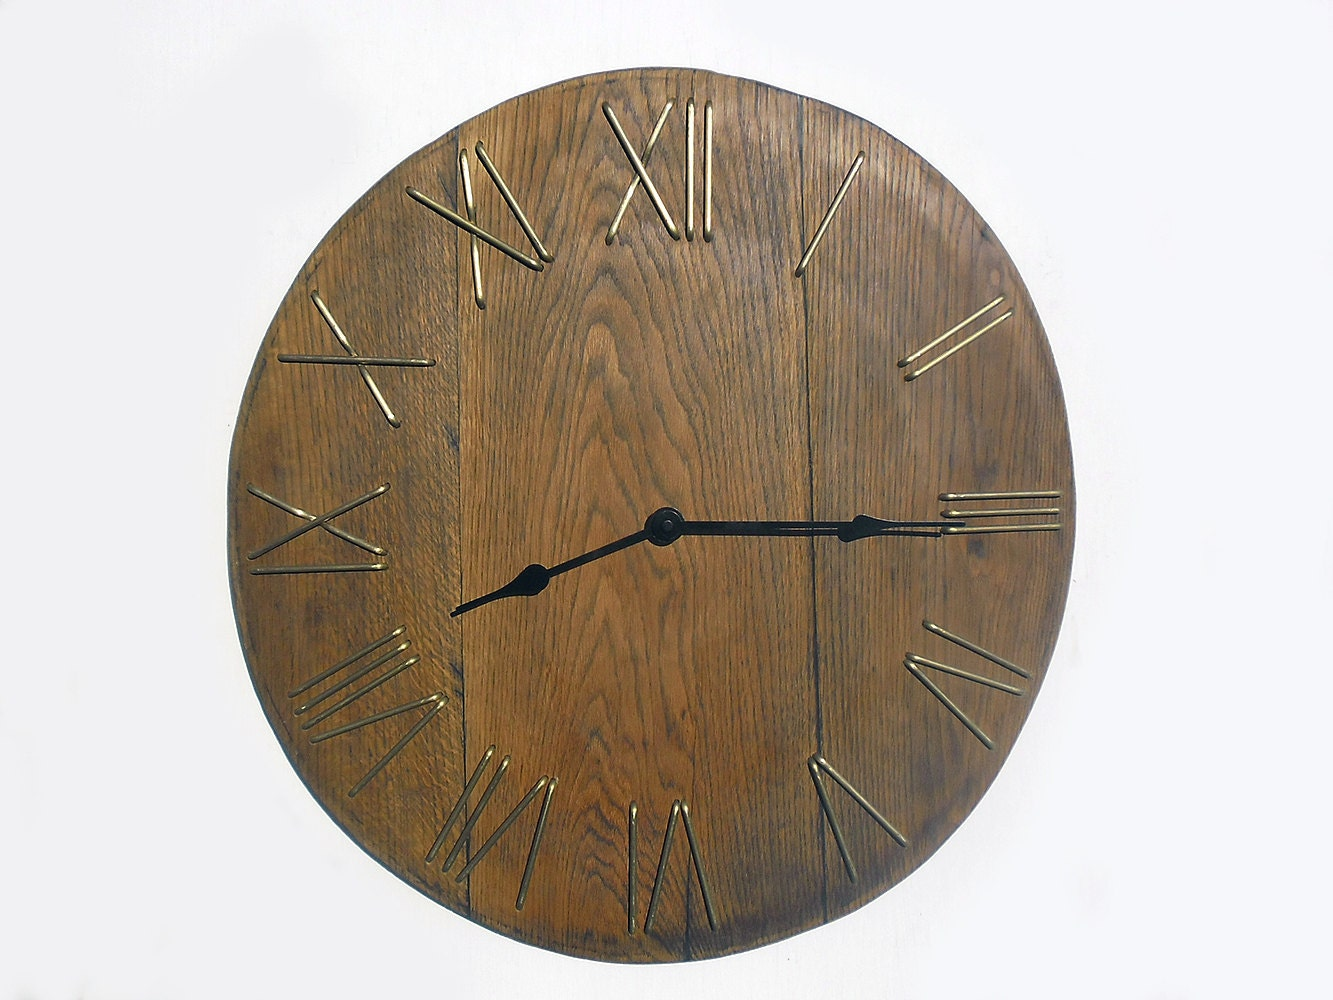 21 39 39 Large Rustic Wall Clock Unique Big Wall Clock